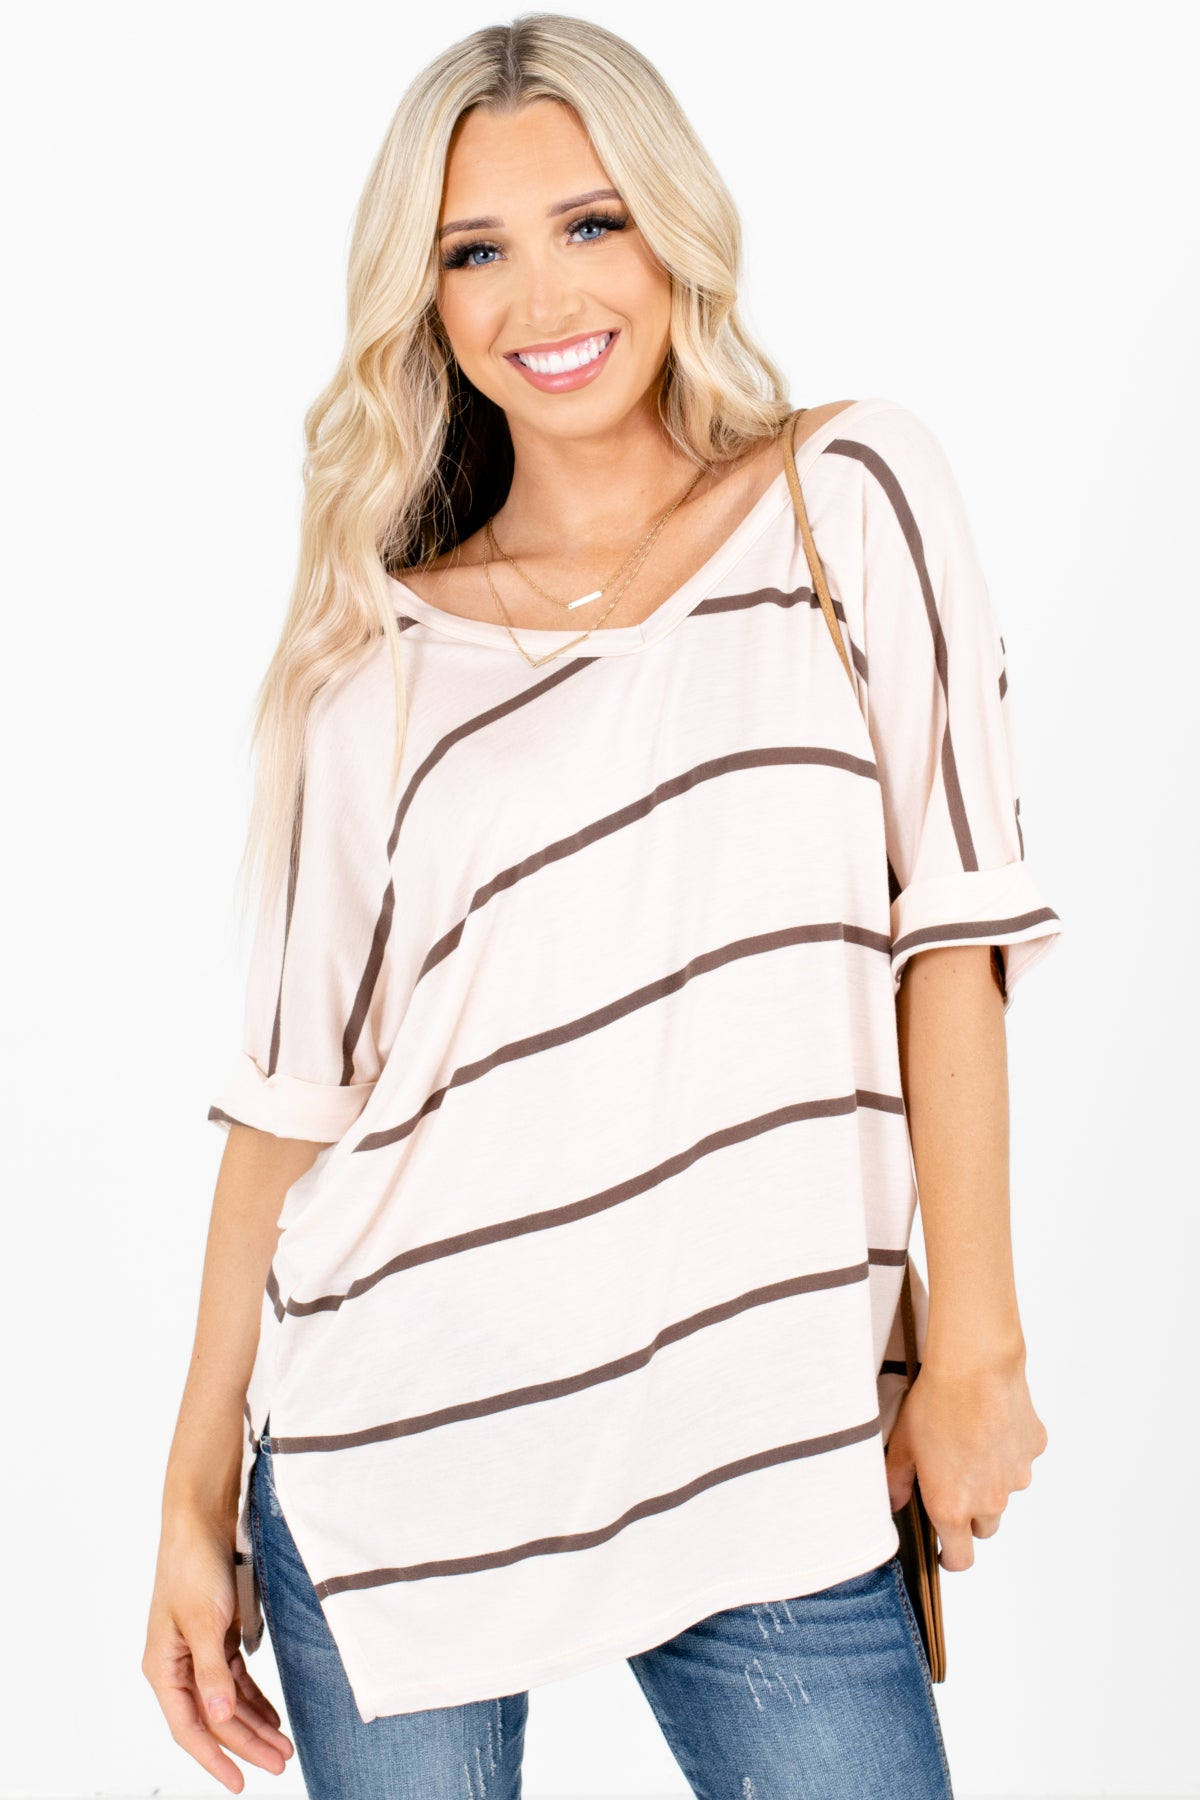 Cream and Brown Stripe Patterned Boutique Tops for Women